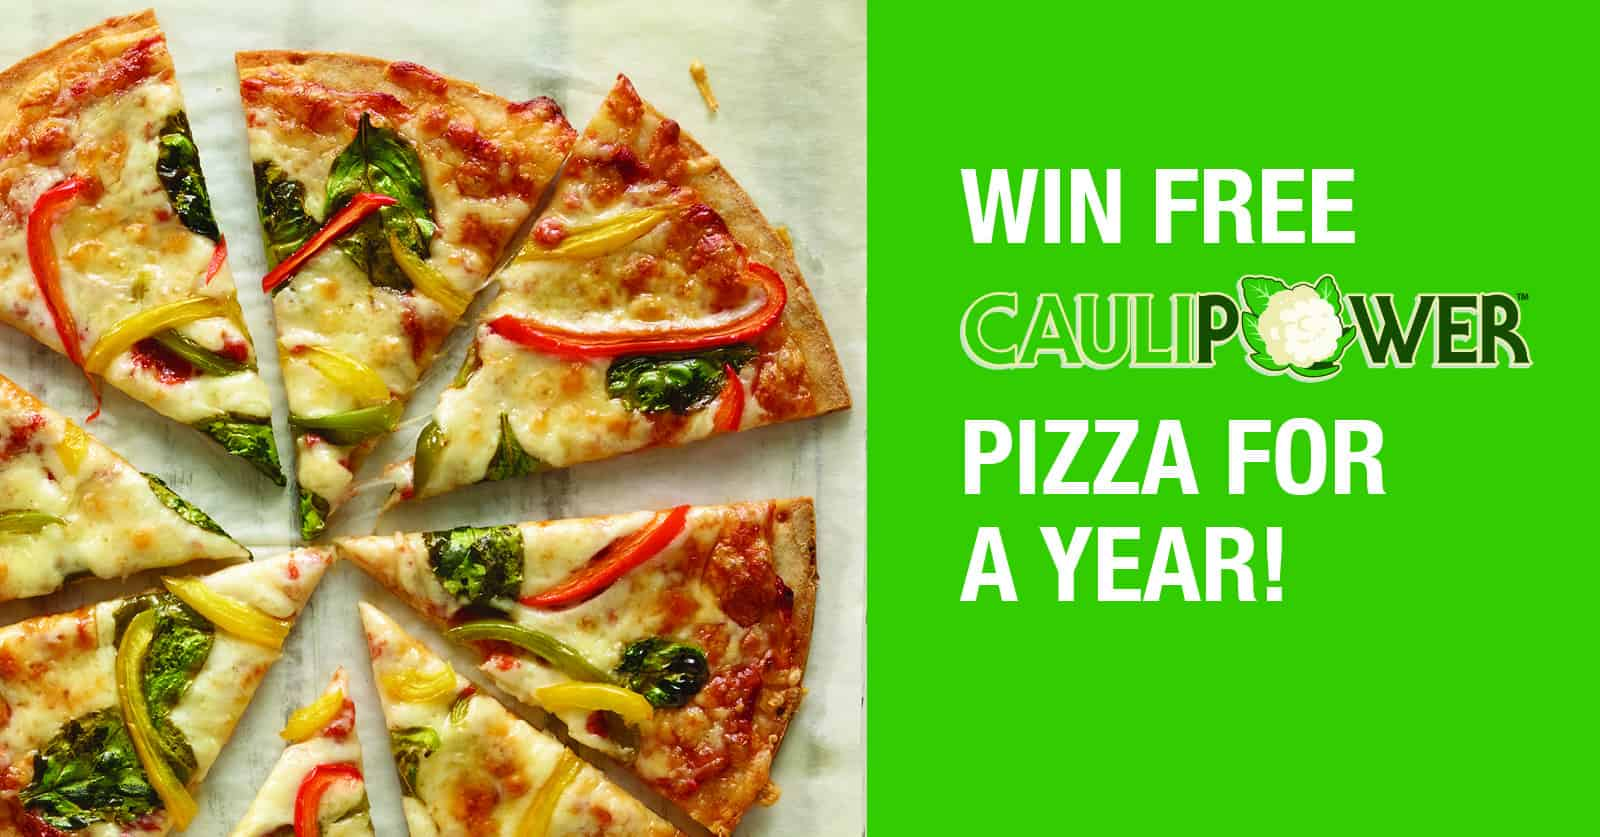 The CAULIPOWER, ready-to-cook cauliflower crust pizza giveaway